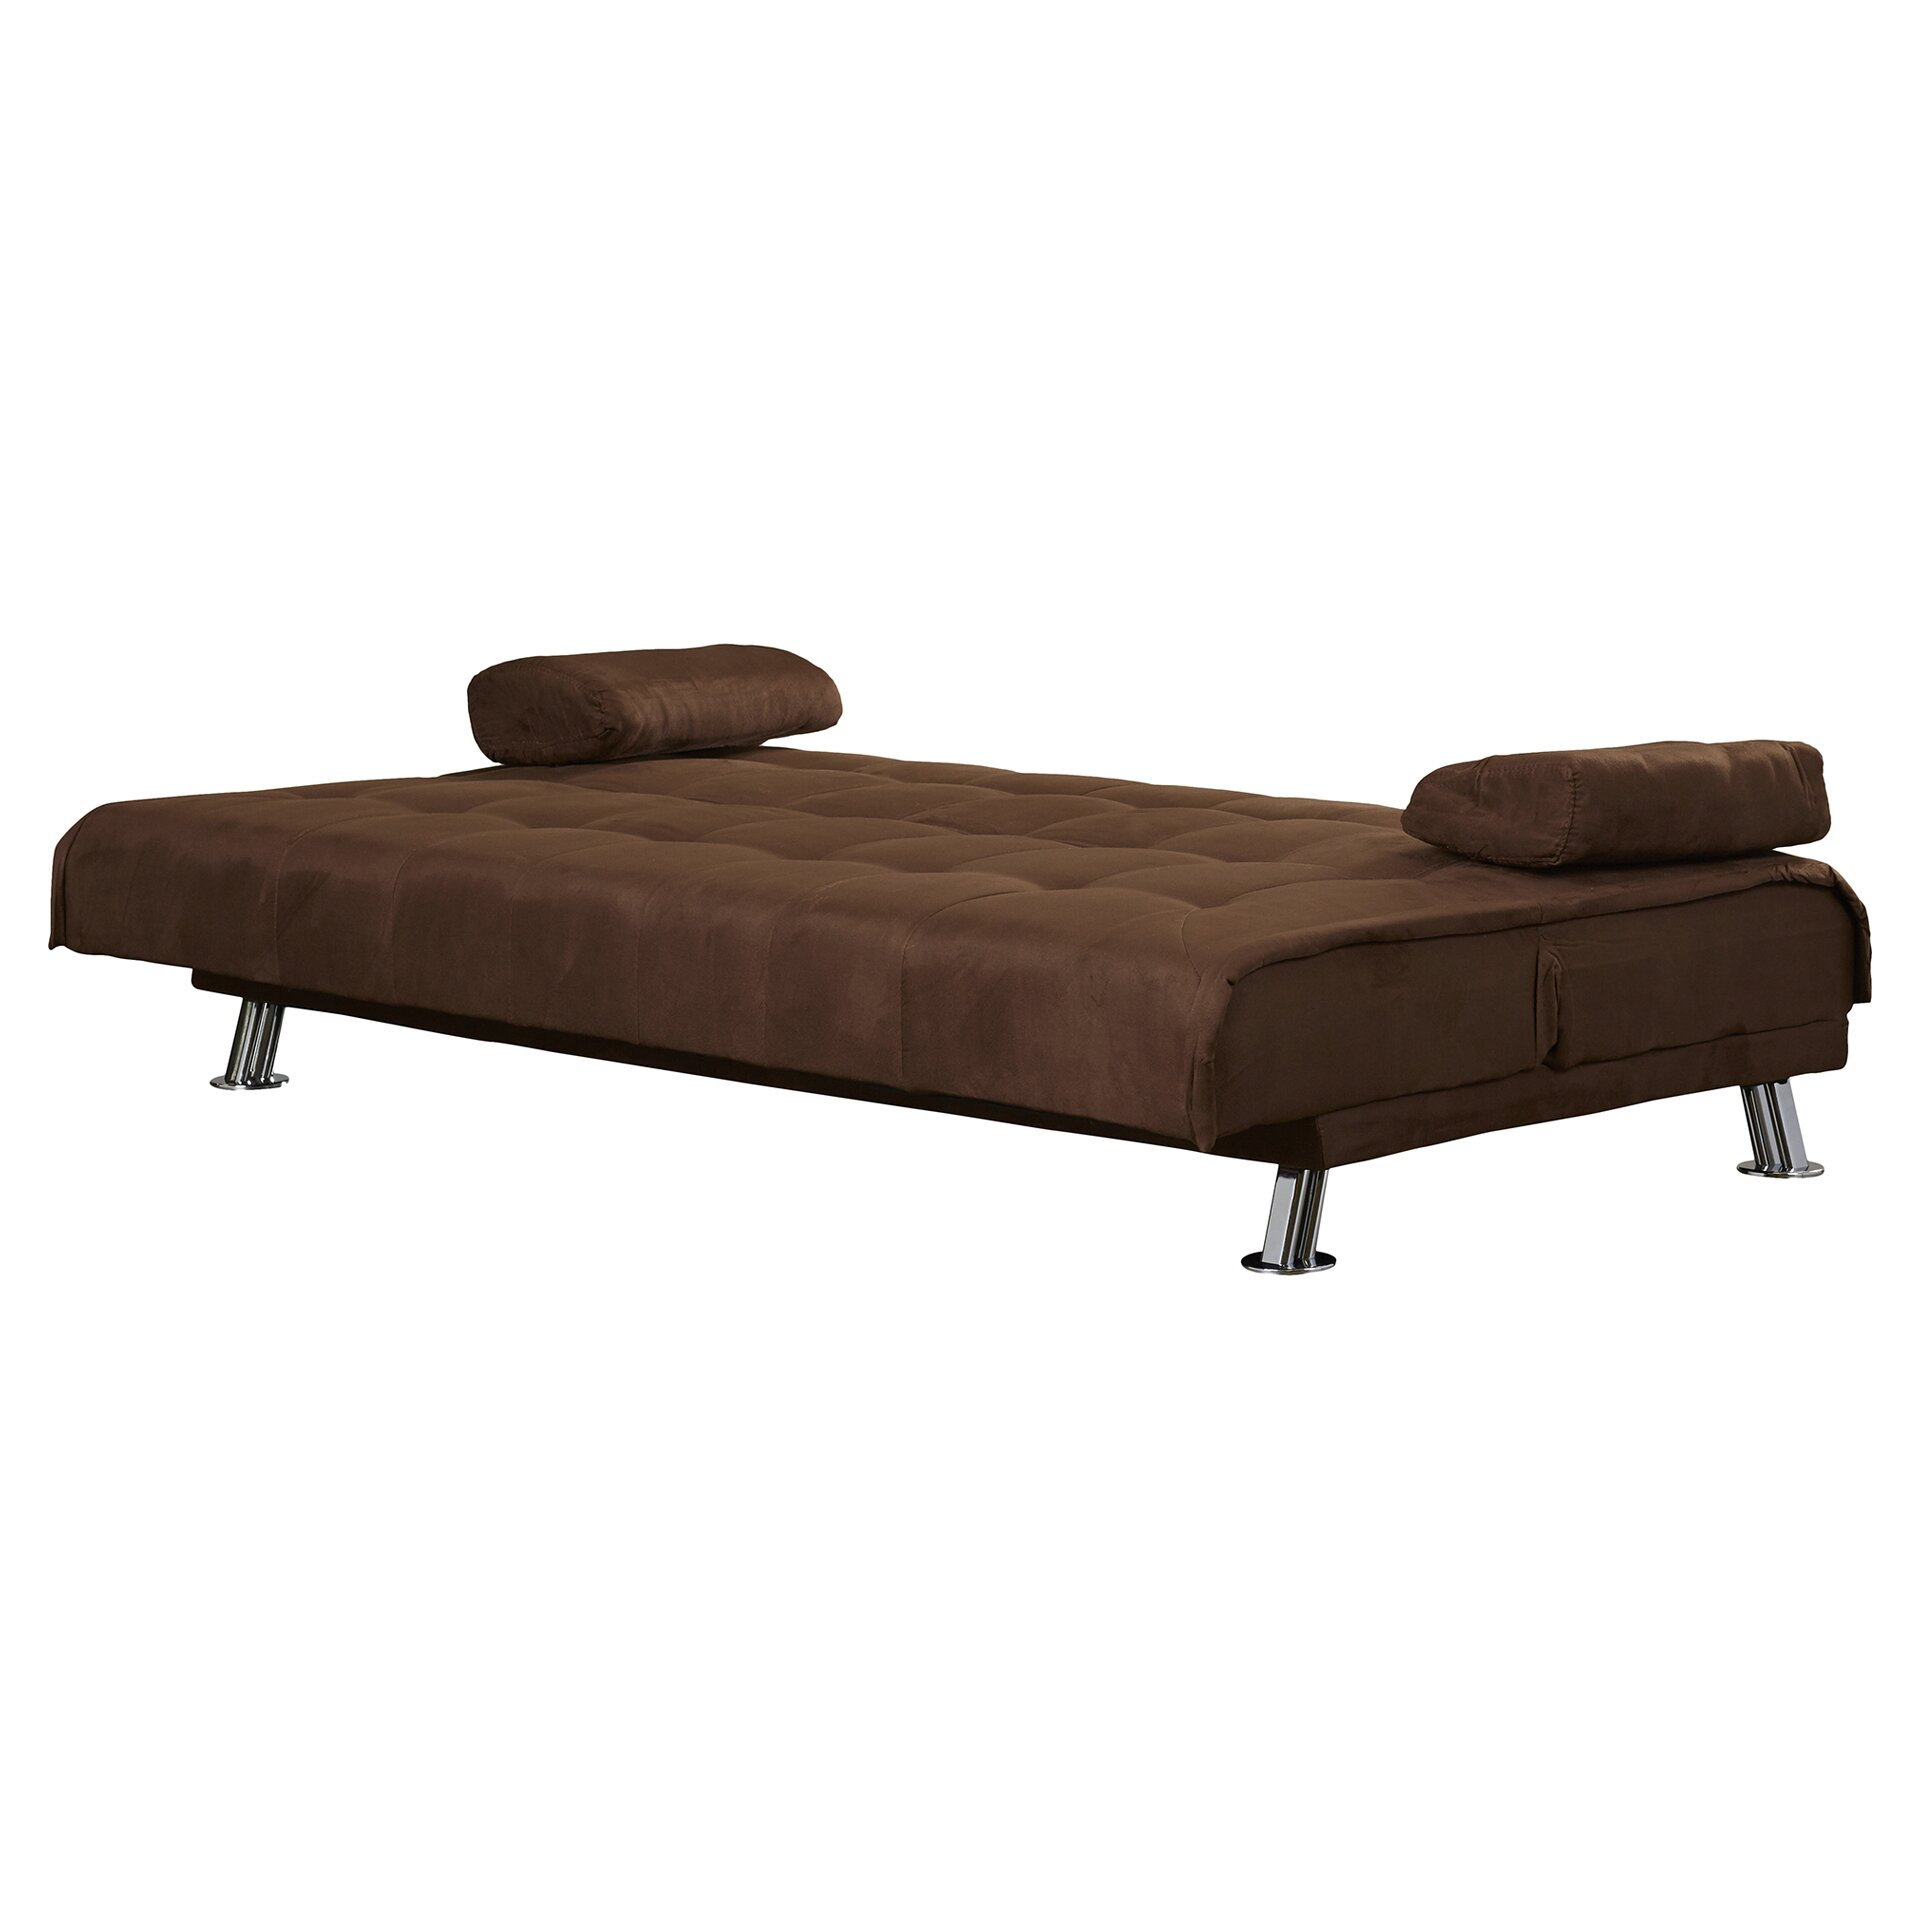 Dillards Furniture Clearance: Dillards Furniture Sofa Sleepers Dillards Furniture